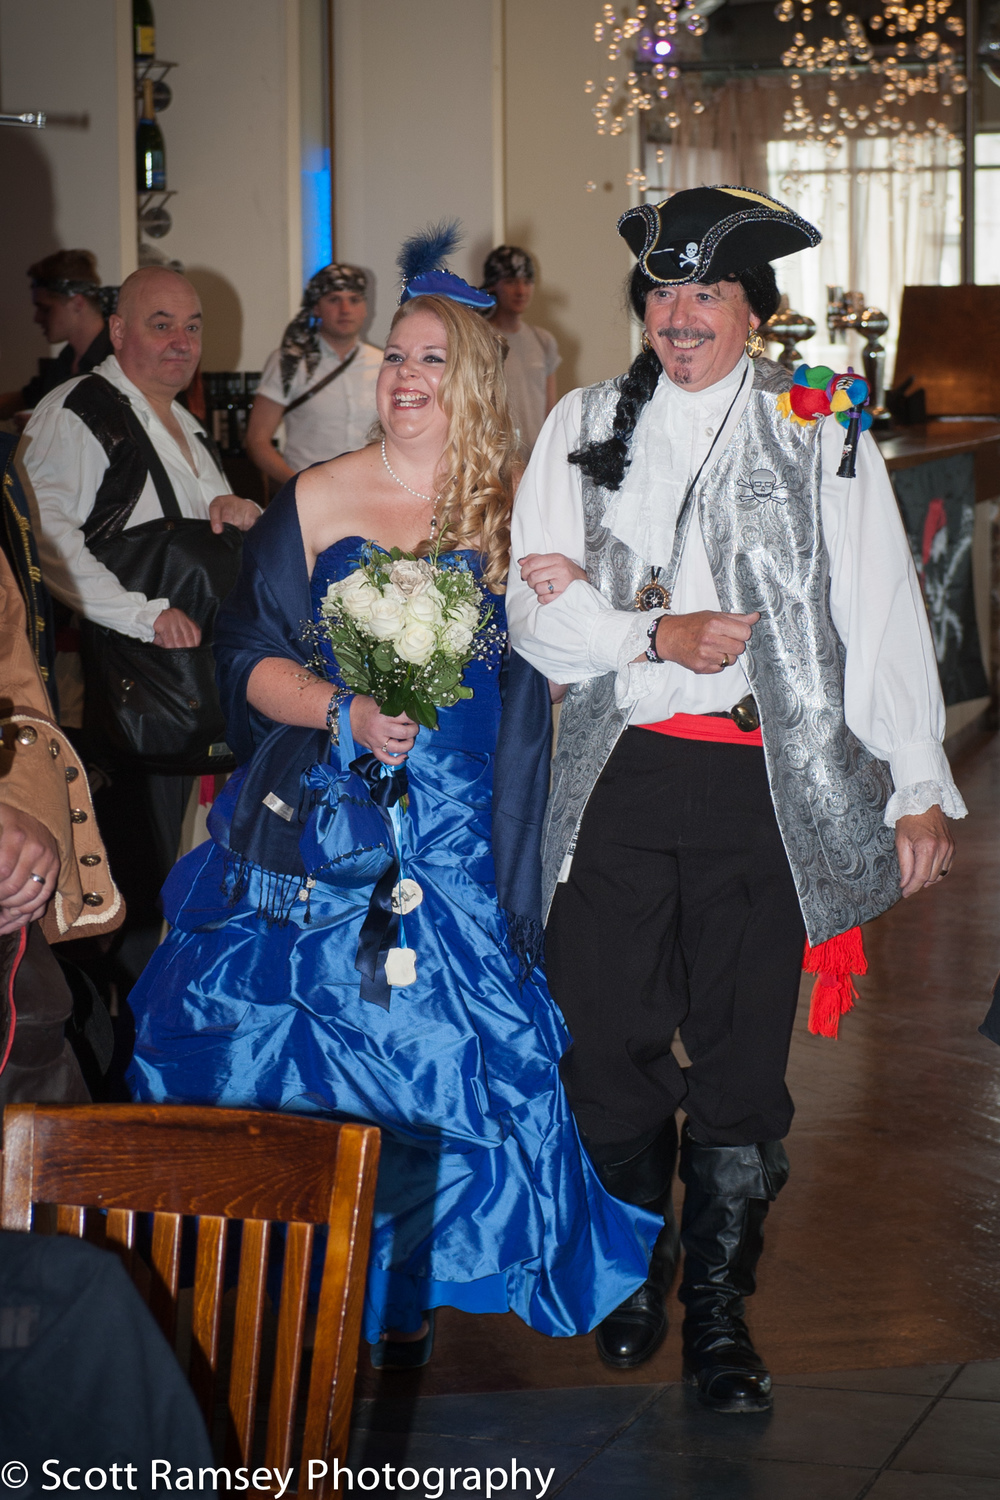 Brighton-Wedding-Photography-Pirate-Theme-Bride-140913-0040